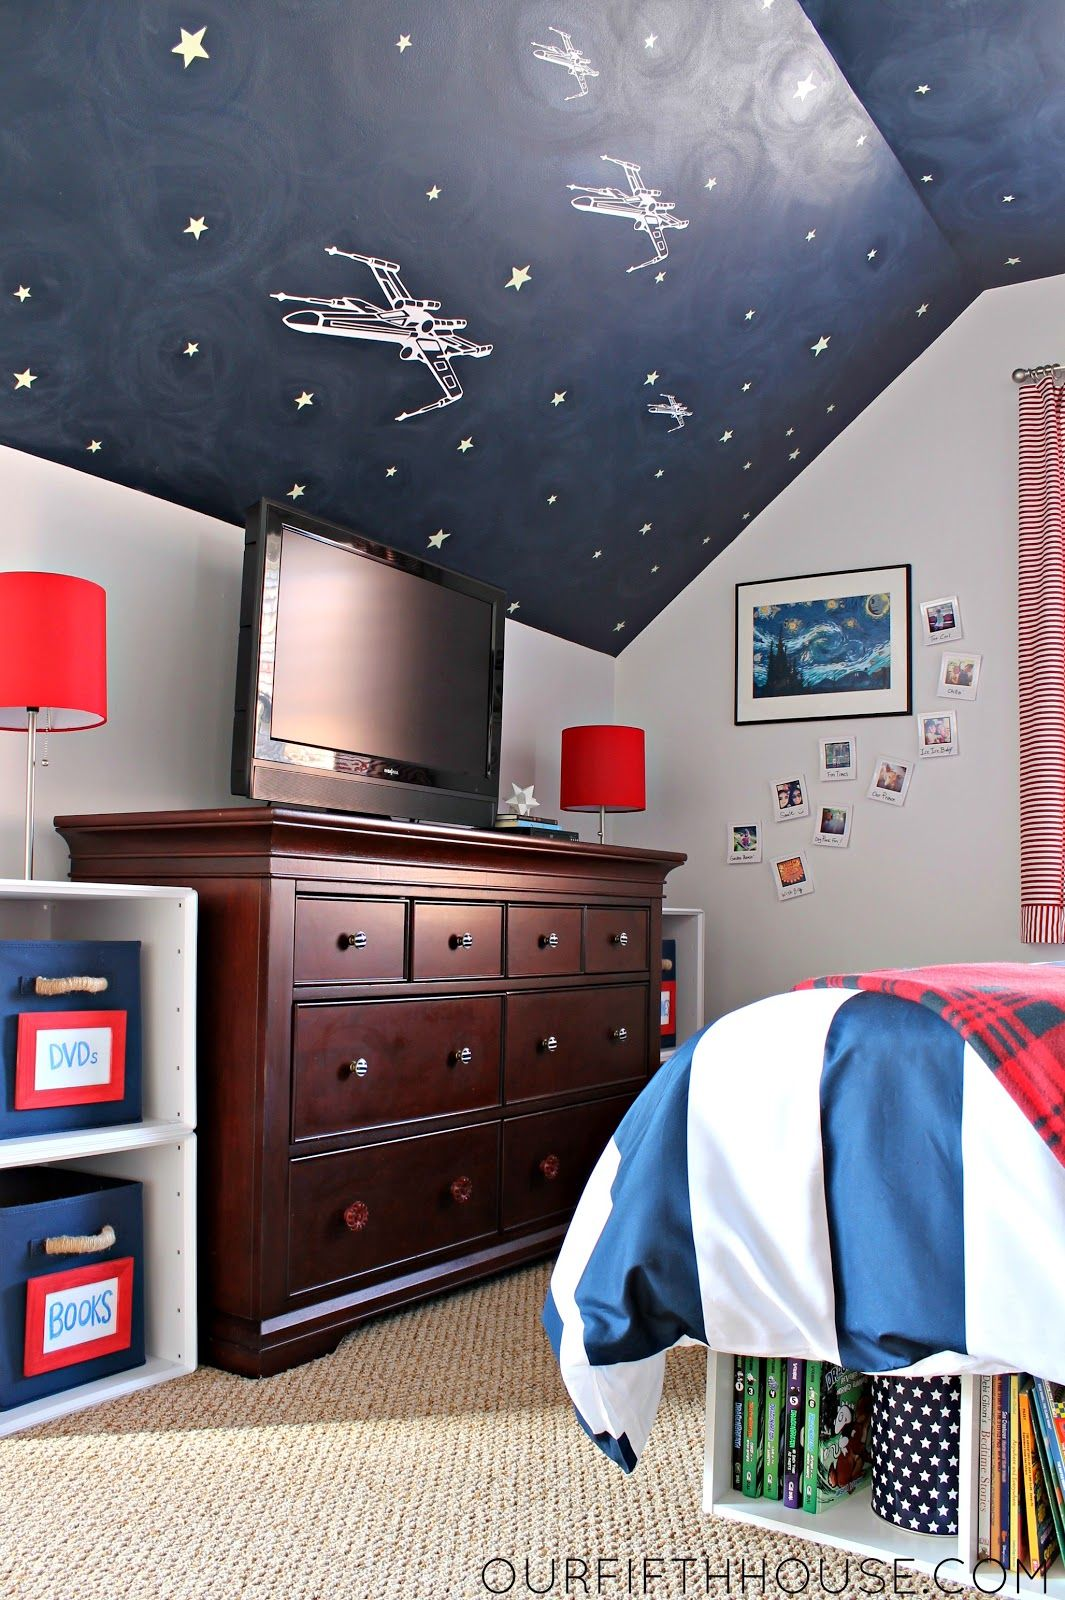 Bedroom ceiling paint ideas - Star Wars Bedroom For Boys It Was An Inexpensive Way To Bring Home That Star